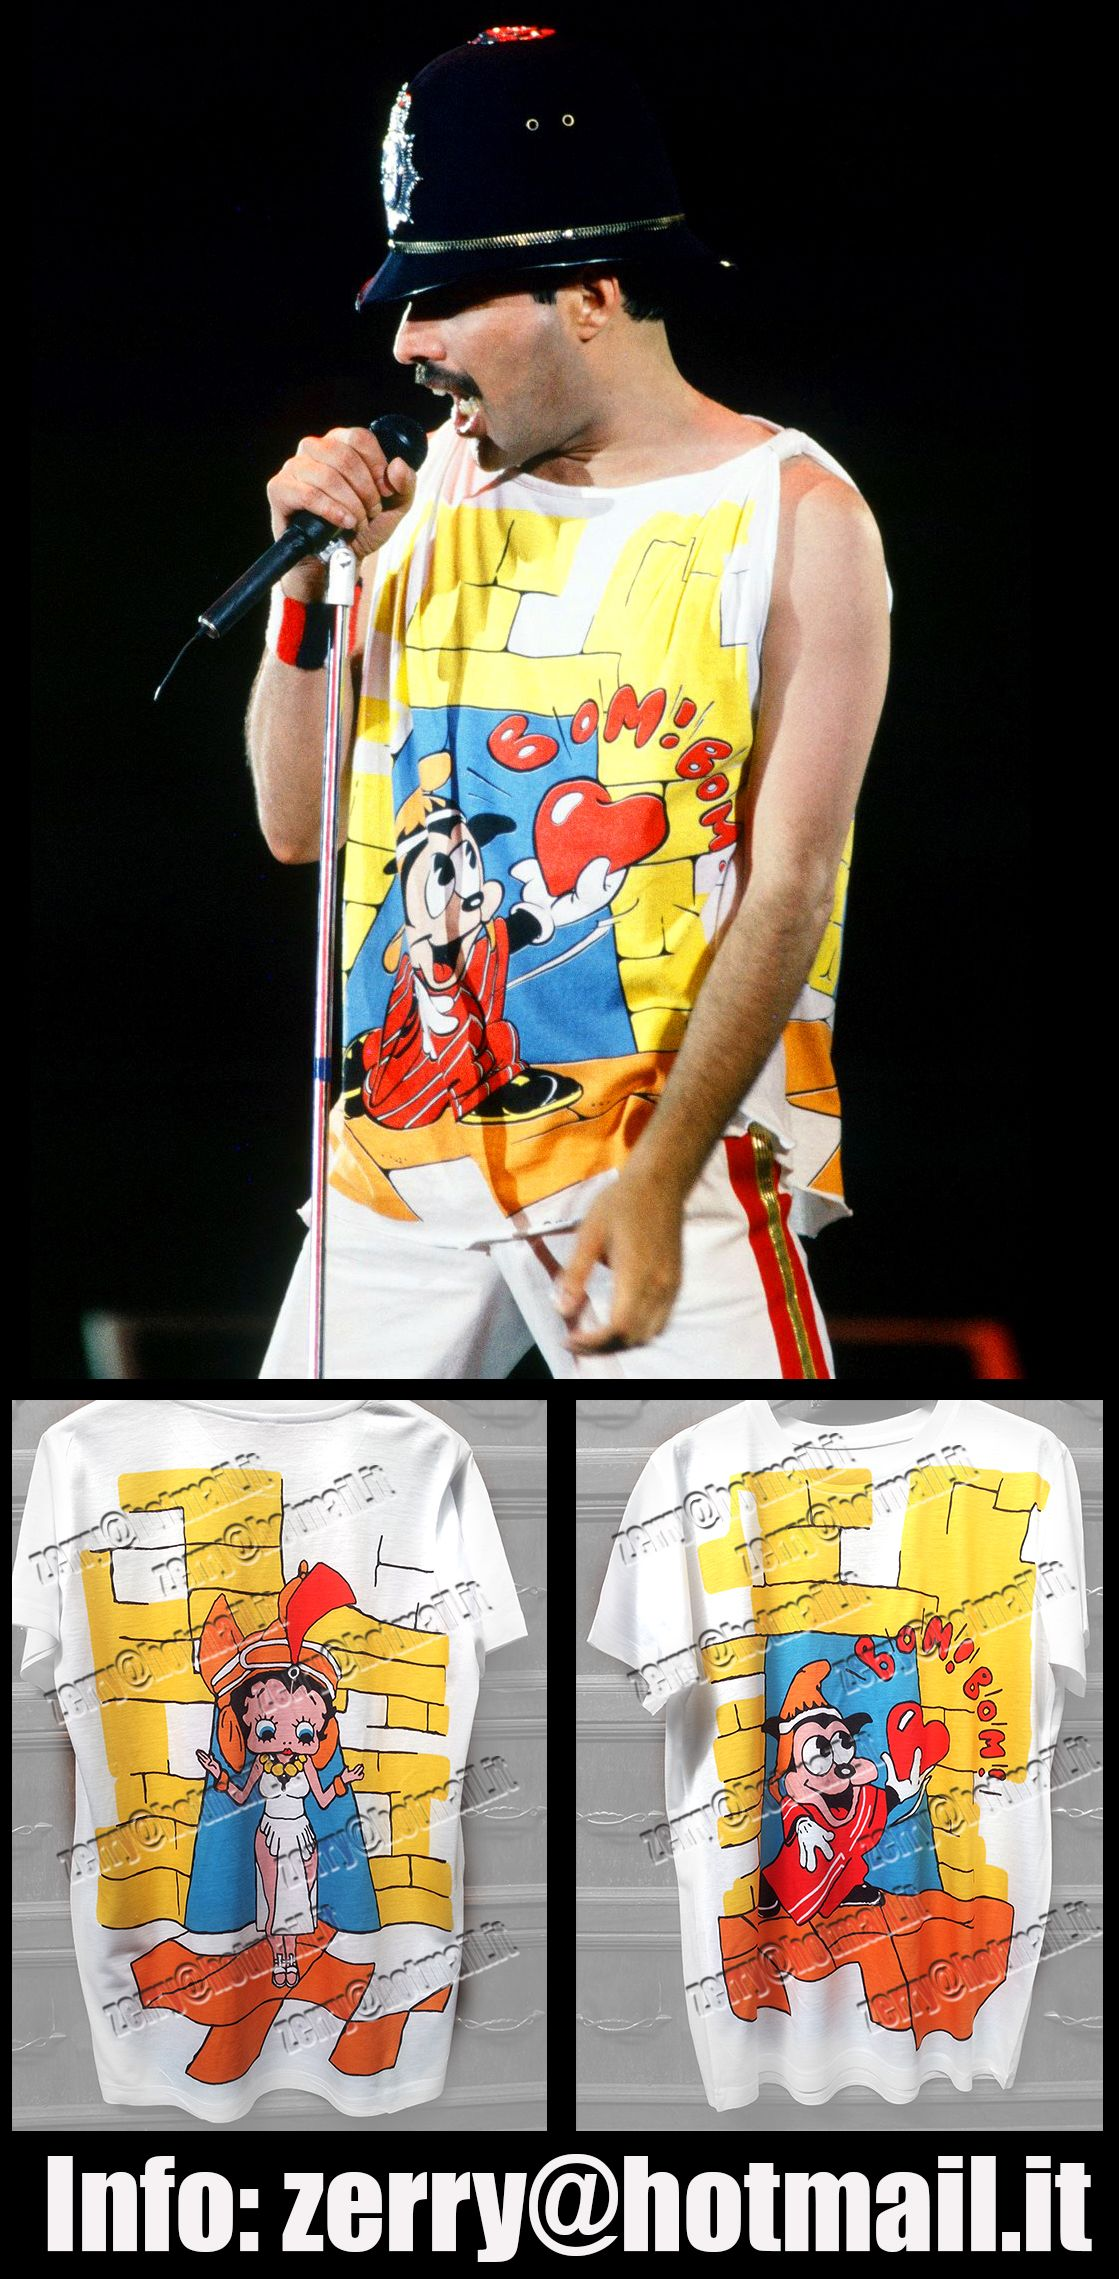 3f82cdbef T-Shirt Freddie Mercury Wembley 86 Betty Boop Queen Rare Memorabilia  COLLECTORS' ITEM ! Authentic reproduction of famous T-shirt worn by Freddie  Mercury ...